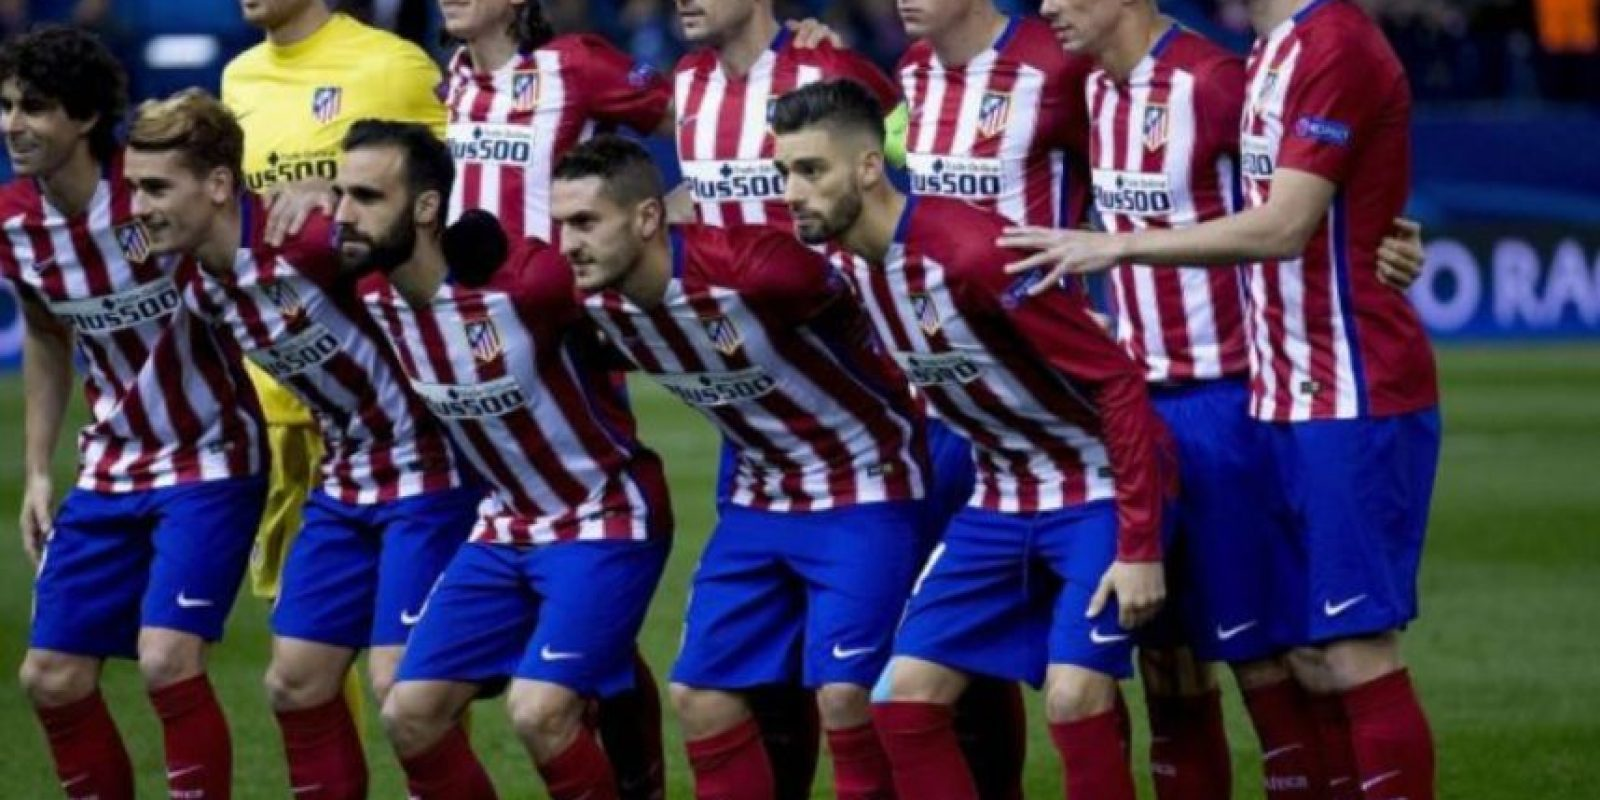 6. Atlético de Madrid Foto: Getty Images